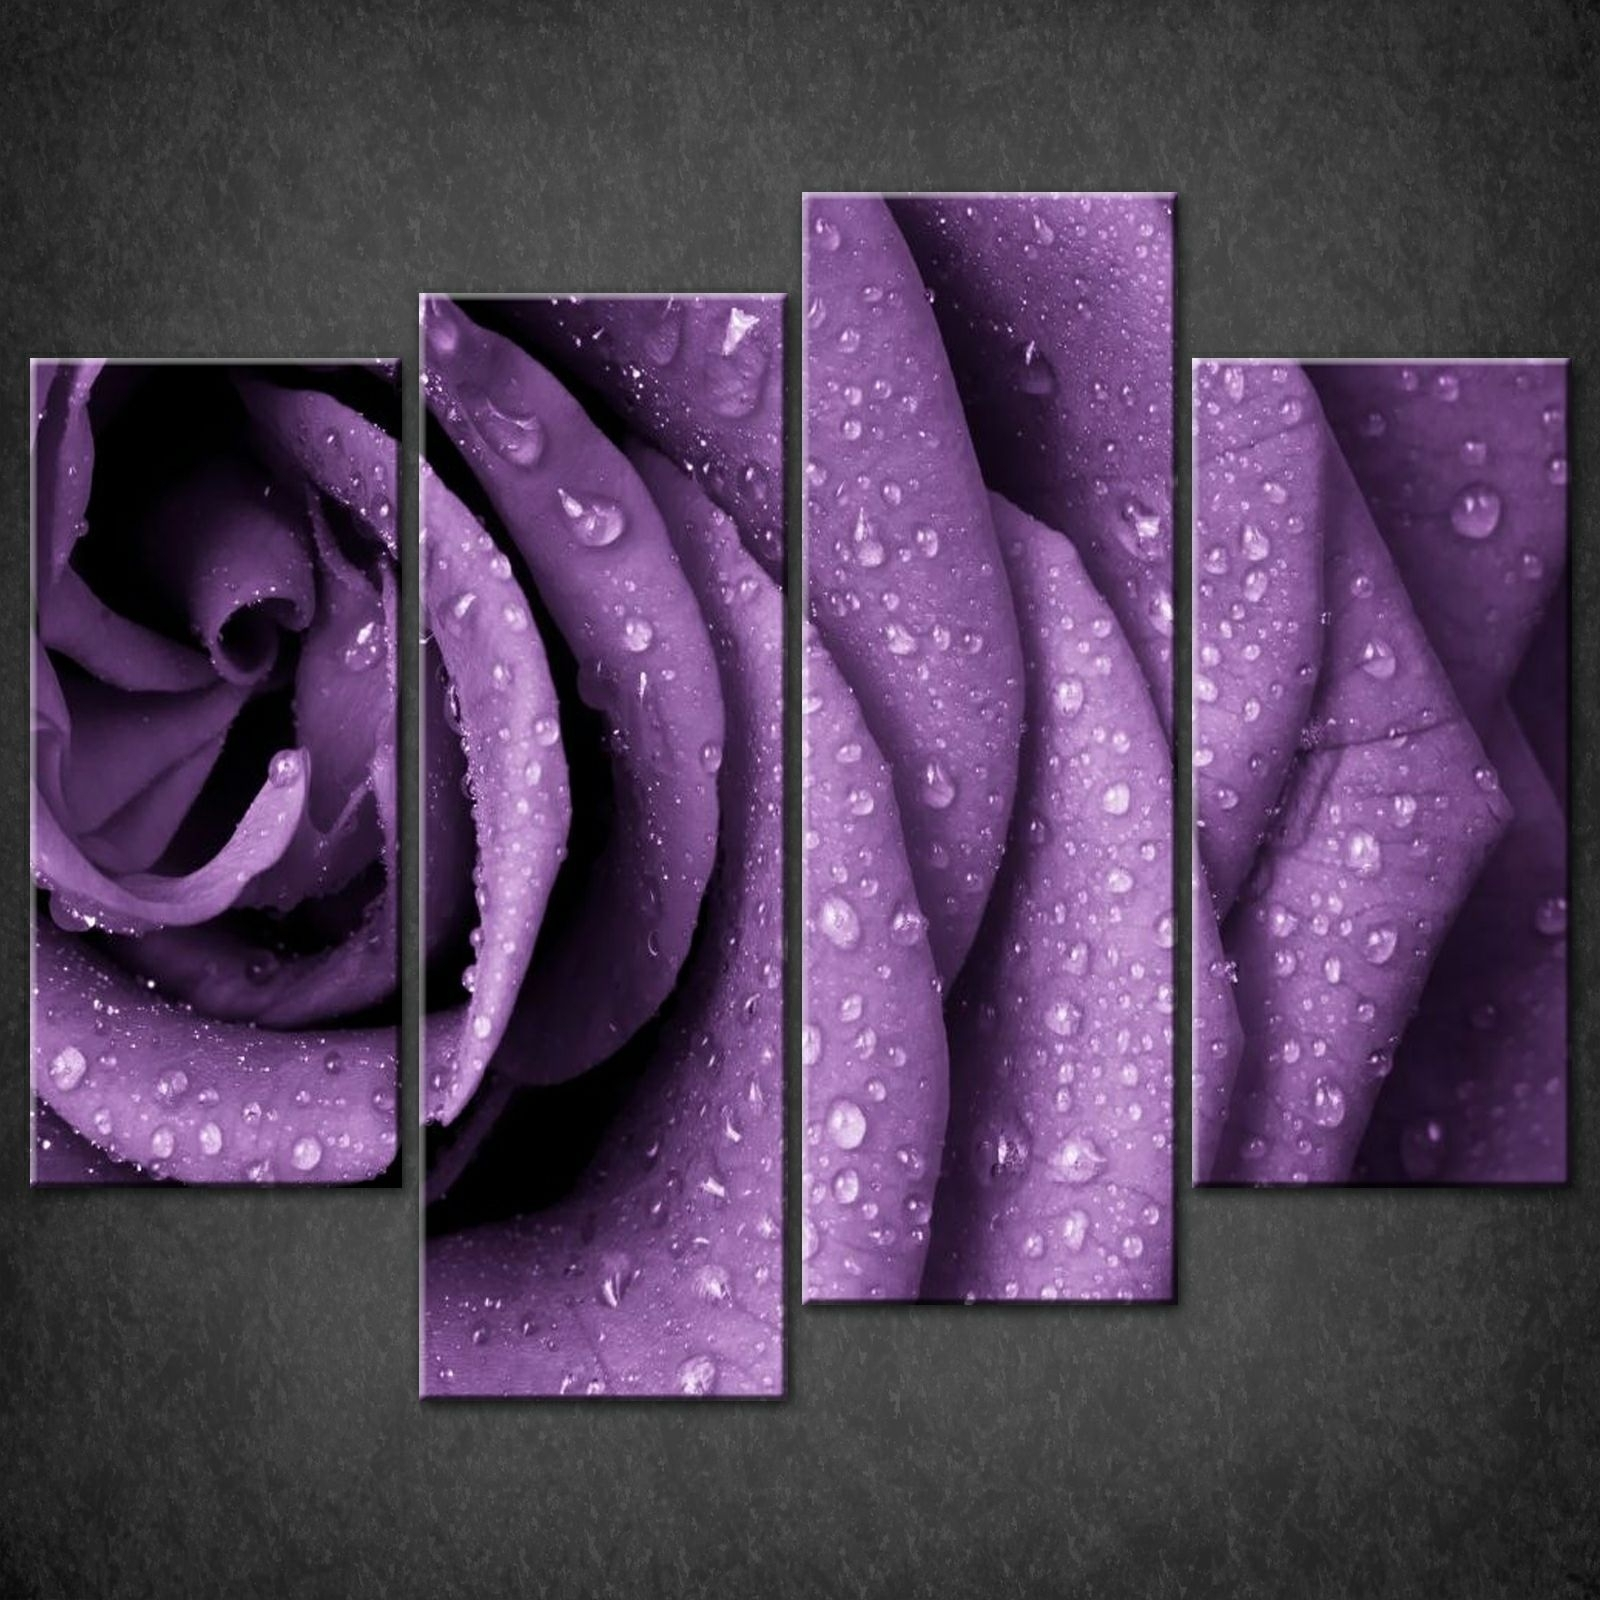 Wall Art: Beautiful Gallery Purple Wall Art Canvas Deep Purple With Latest Roses Canvas Wall Art (View 7 of 15)